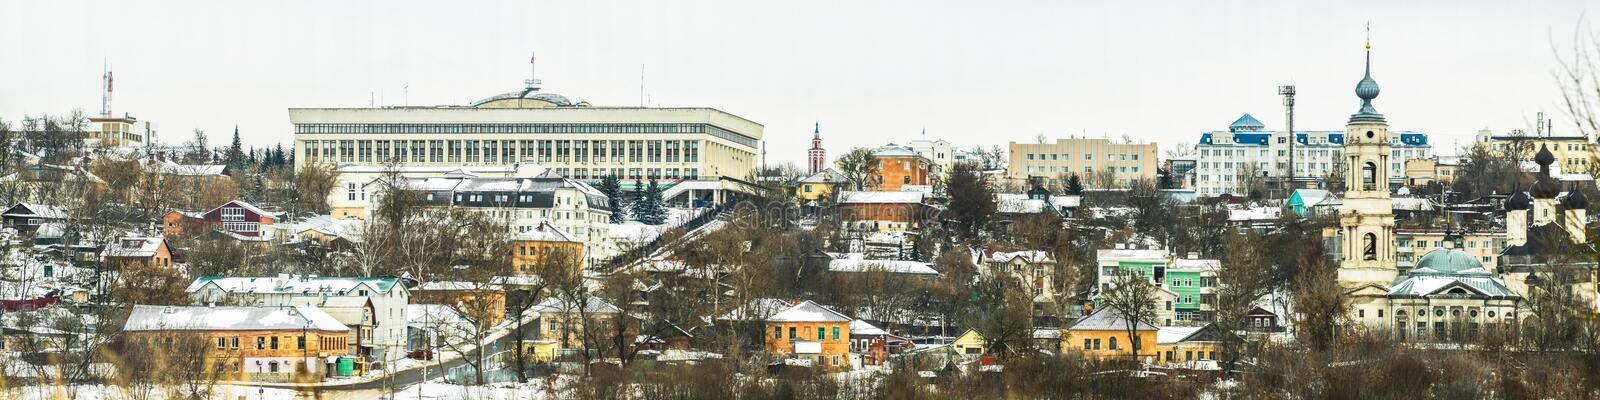 Panorama of the Russian city of Kaluga in high resolution. royalty free stock photo